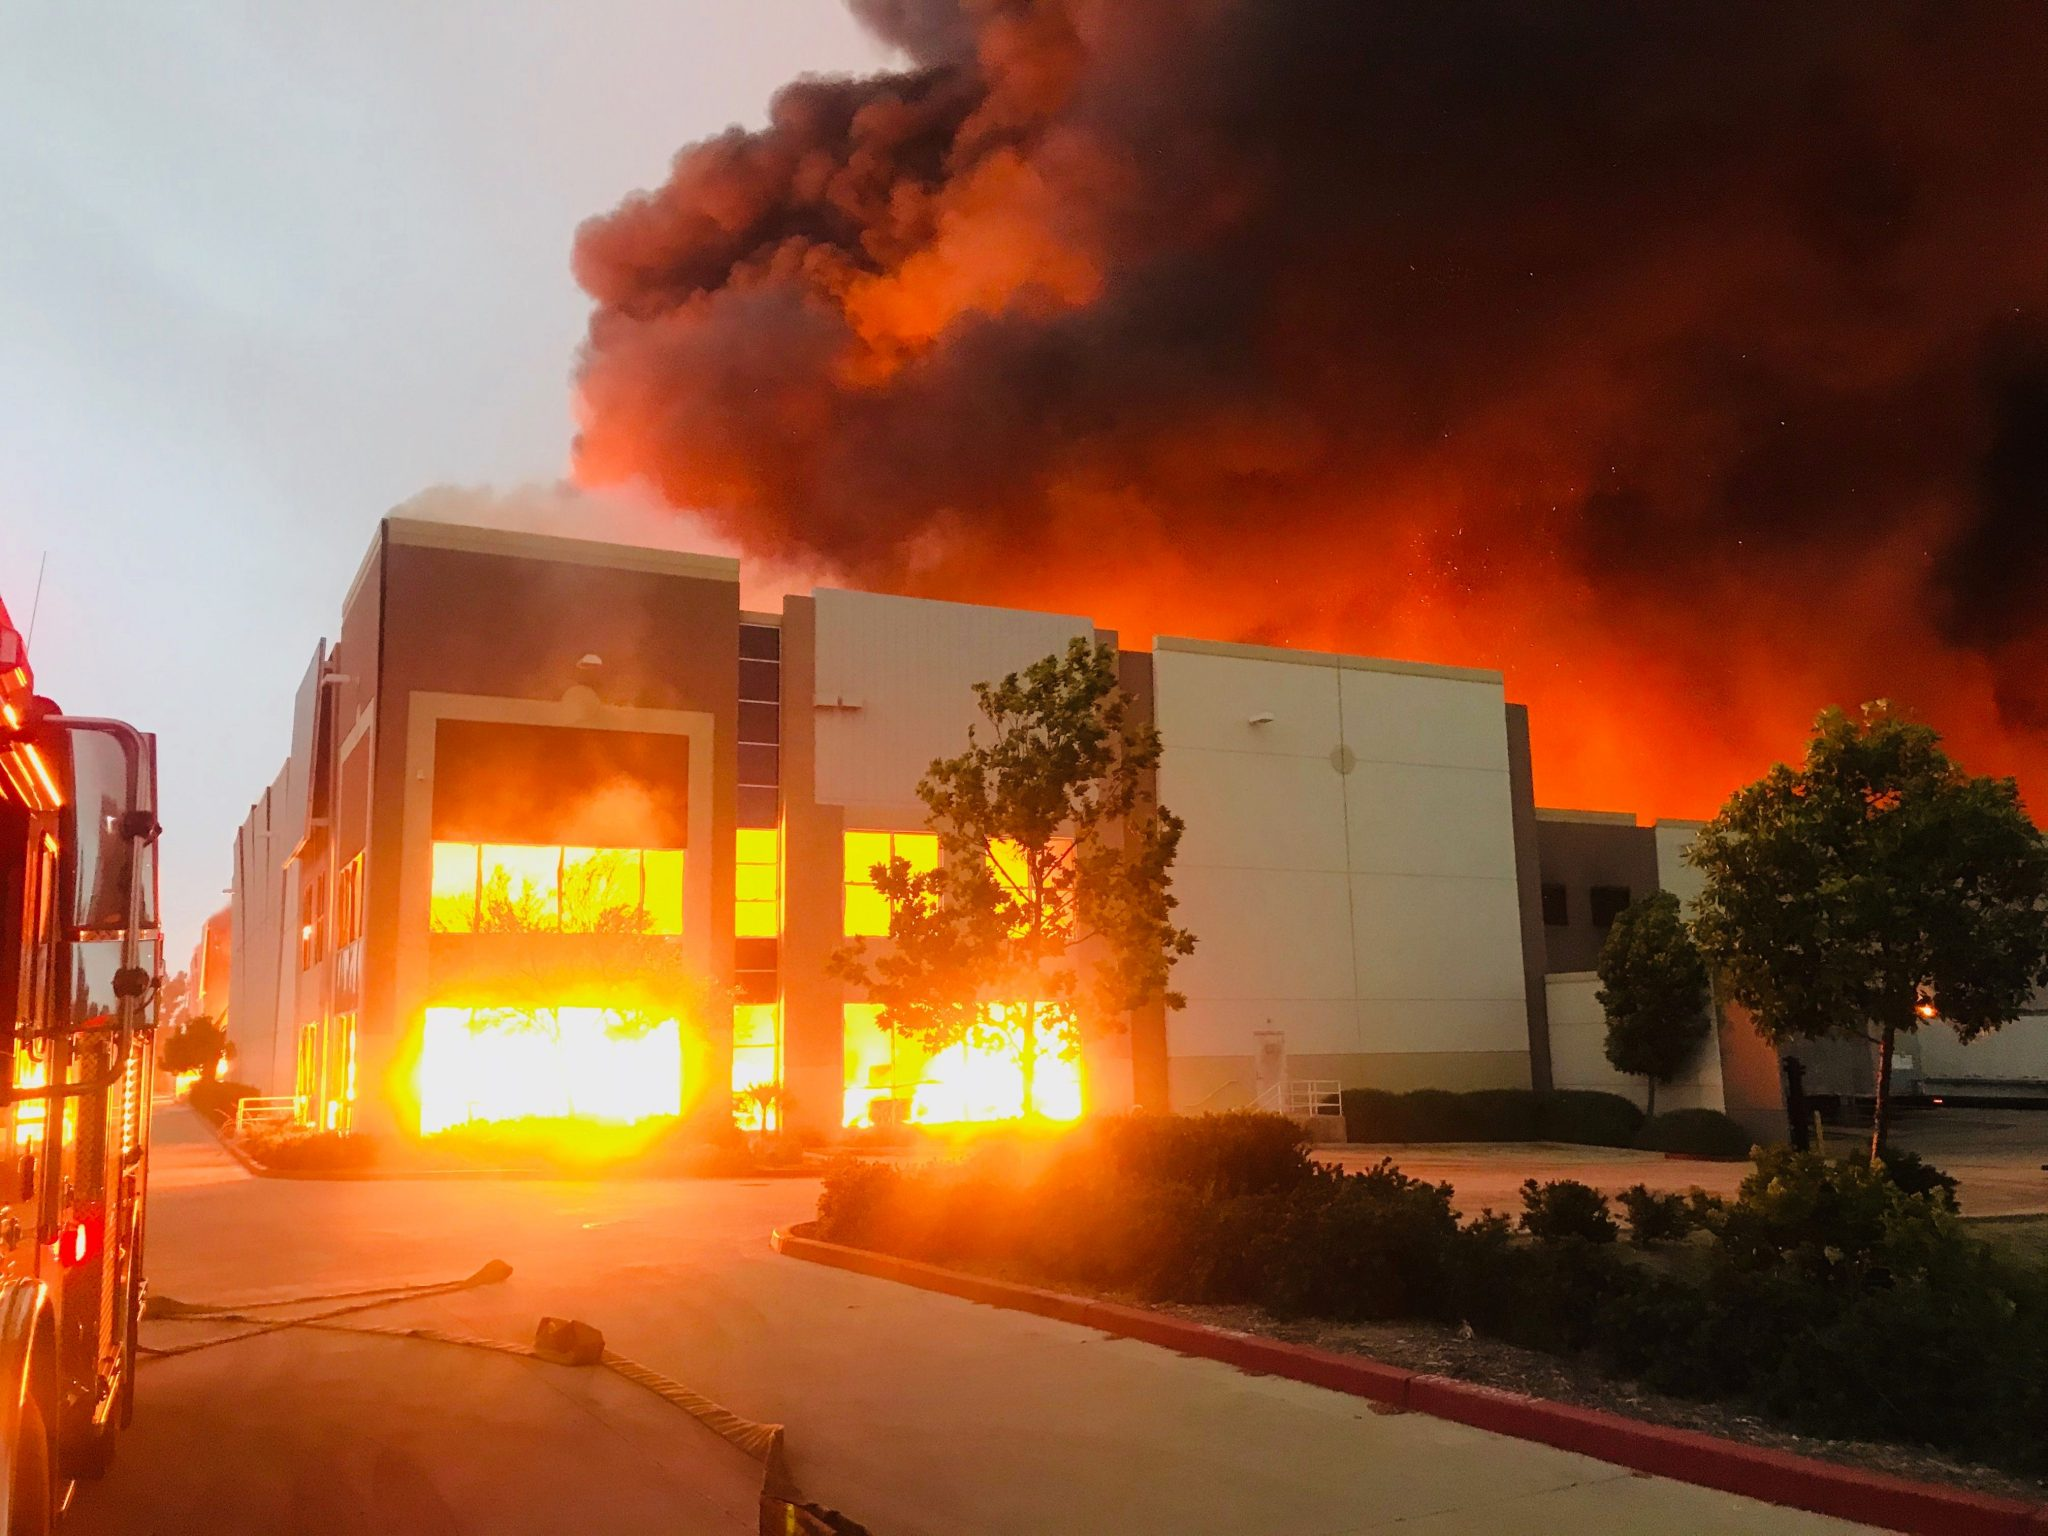 Un incendio se registró en un centro de distribución de Amazon en California, Estados Unidos.